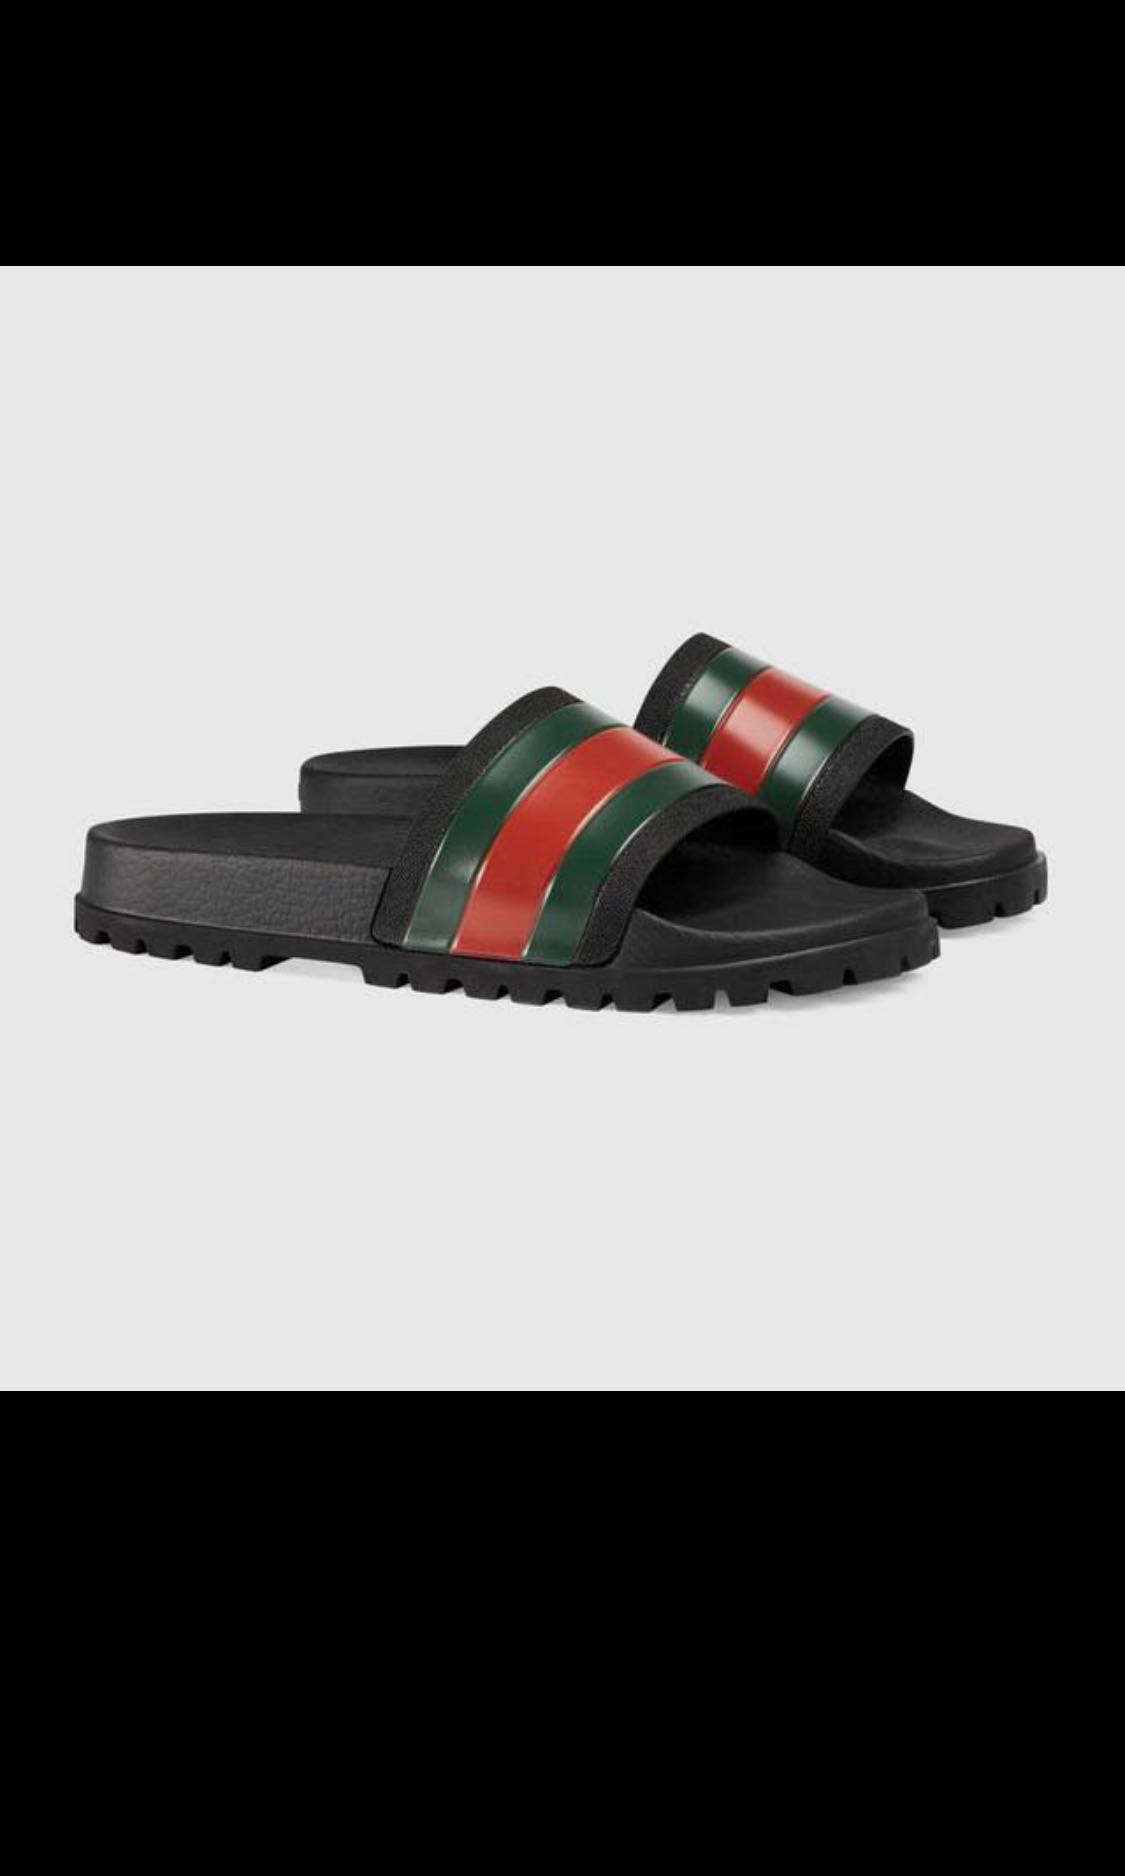 22cab142c GUCCI WEB SLIDERS, Men's Fashion, Footwear, Slippers & Sandals on ...